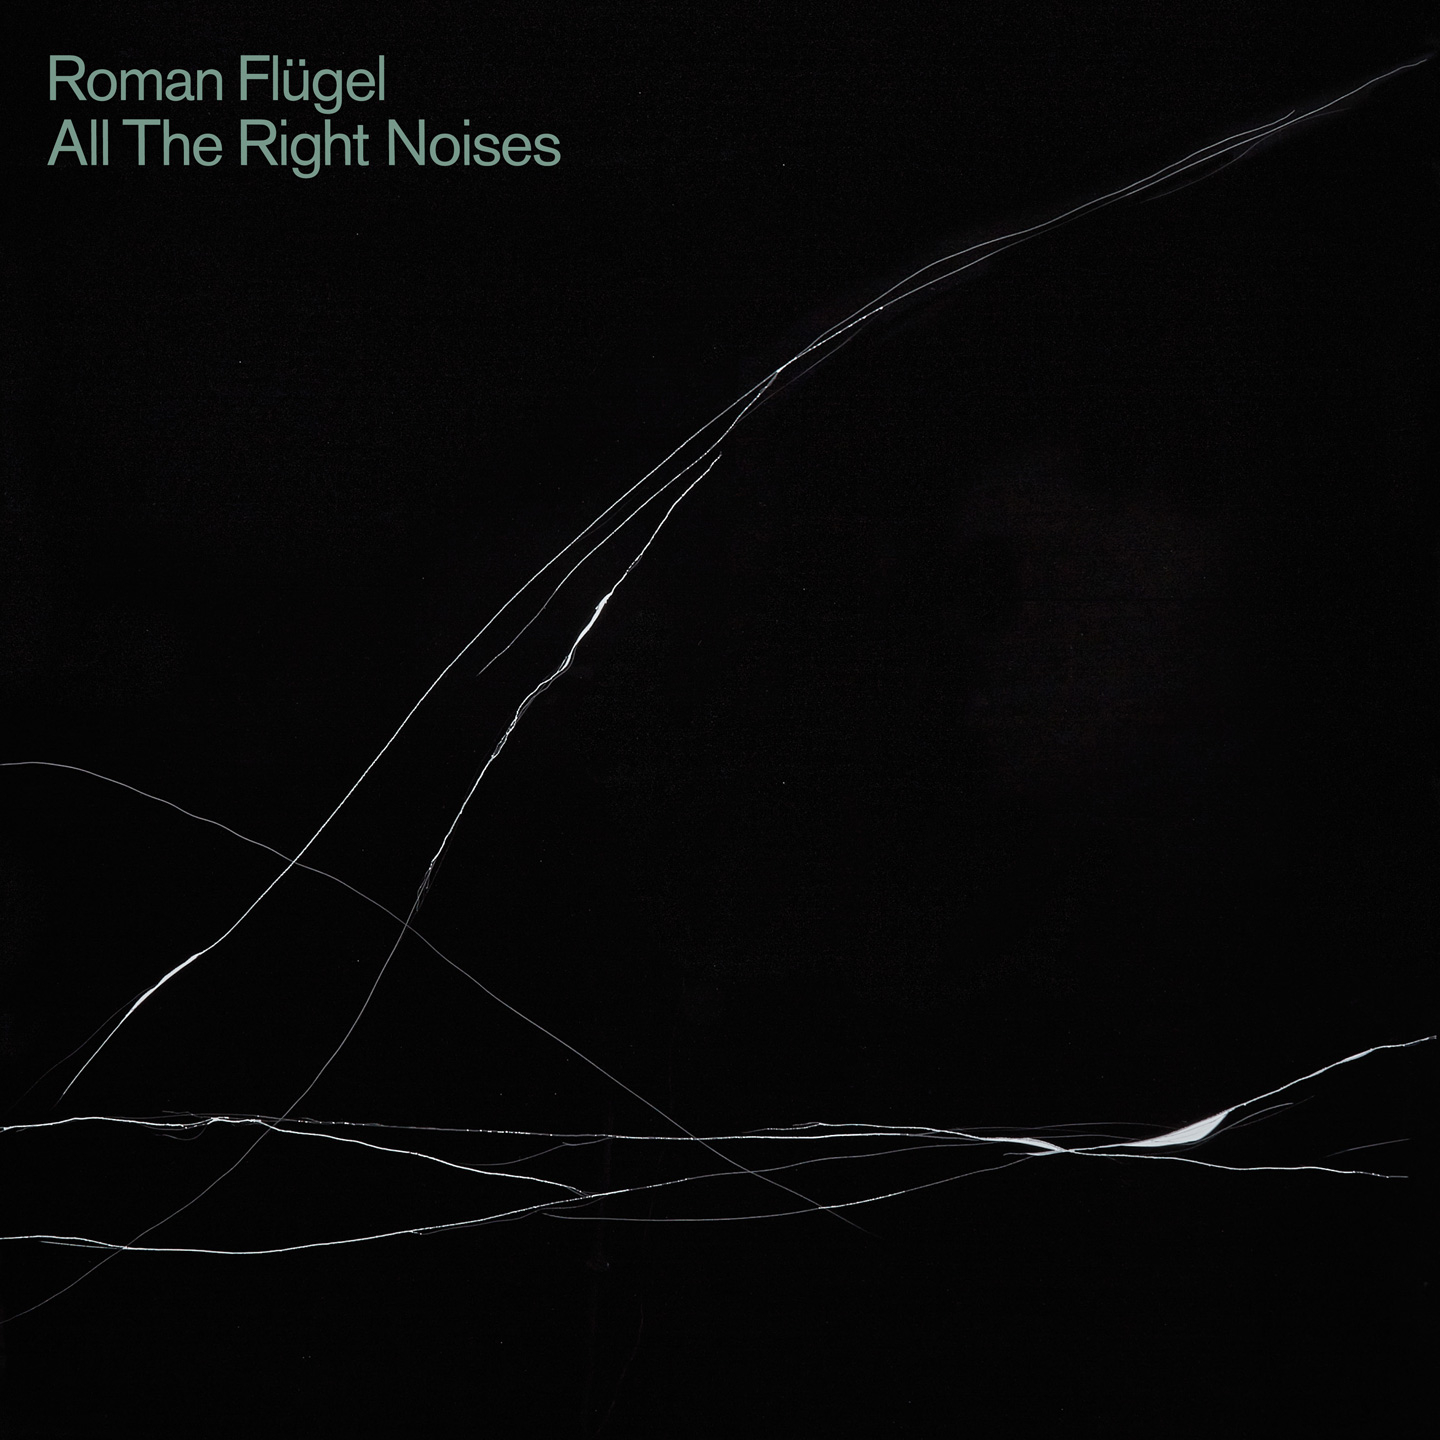 Roman Flügel - All The Right Noises